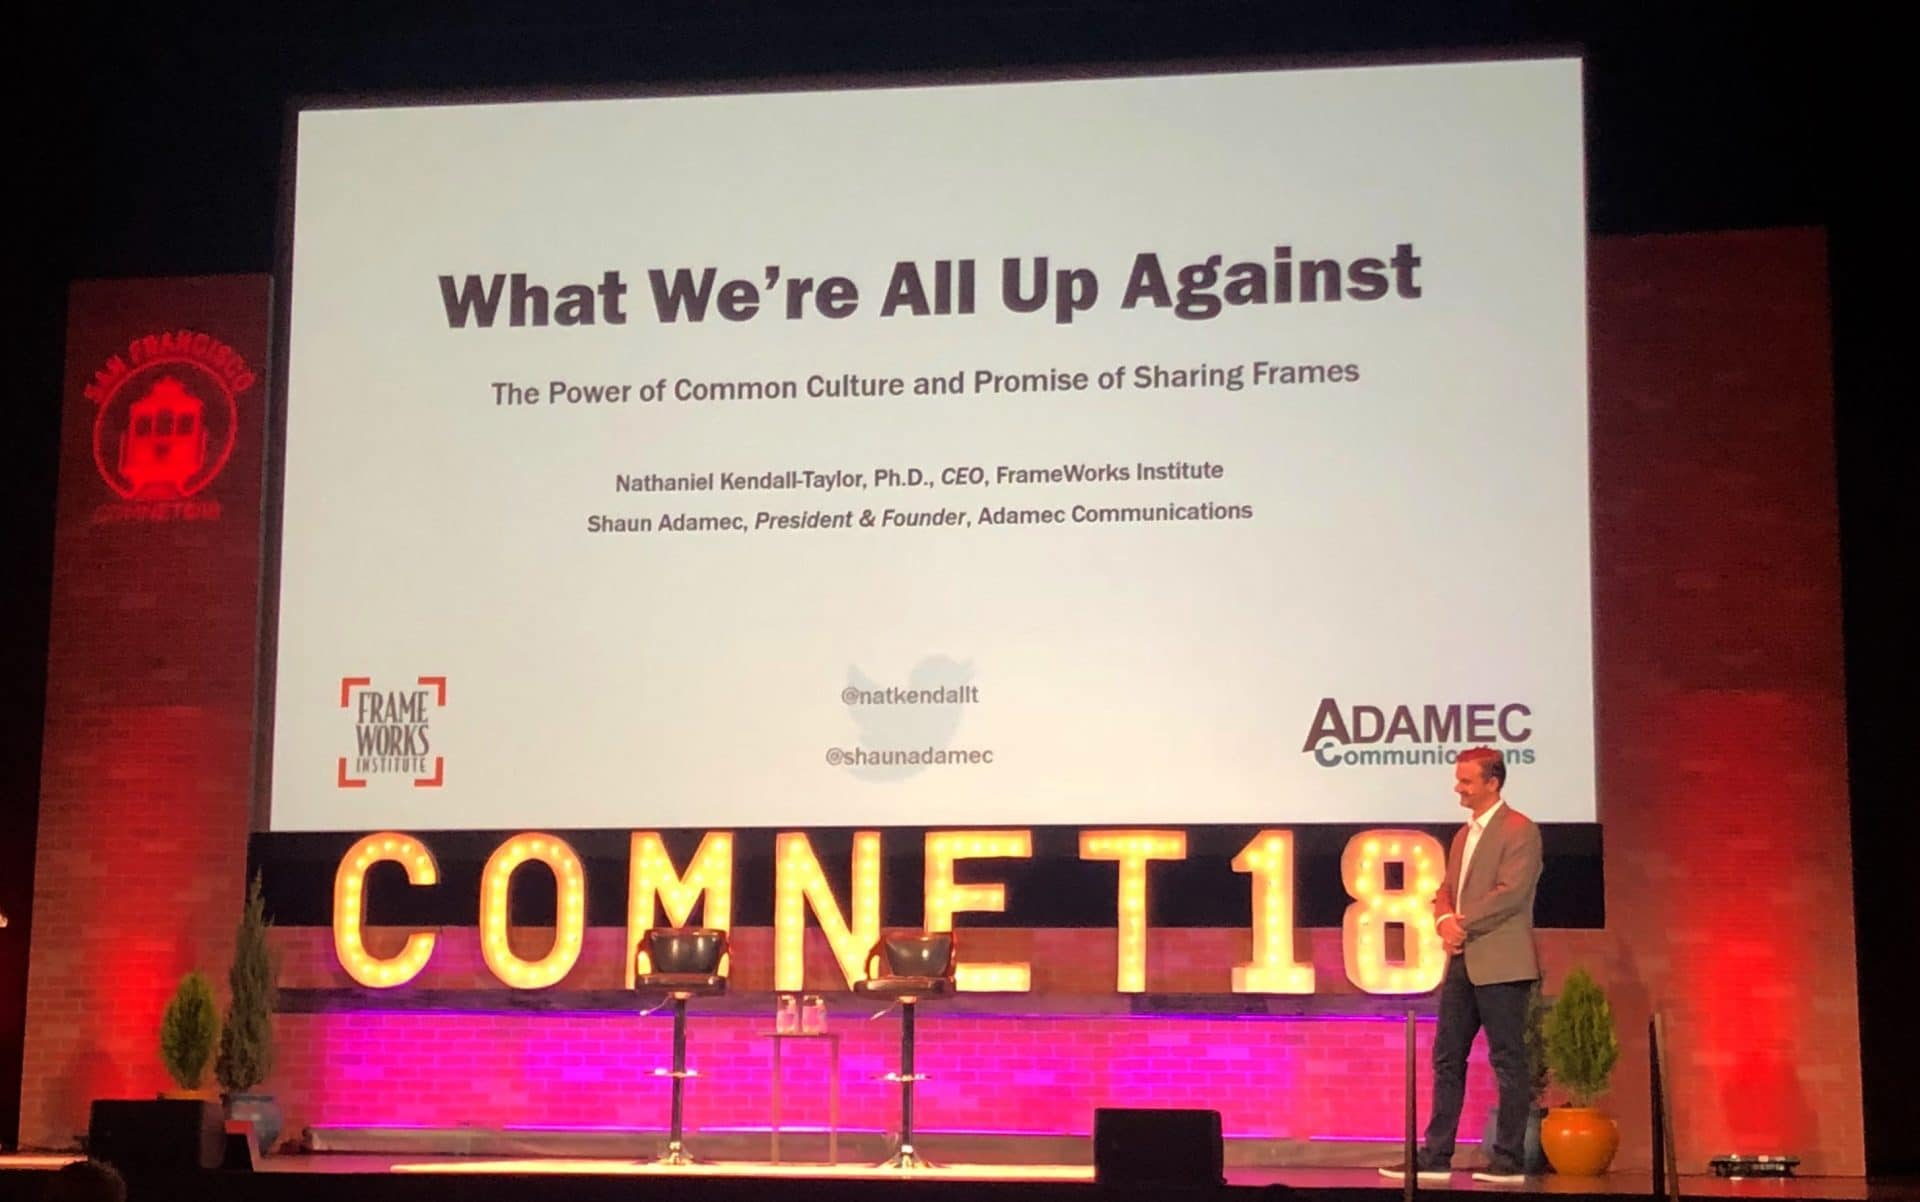 man giving a presentation on theater stage at ComNet18